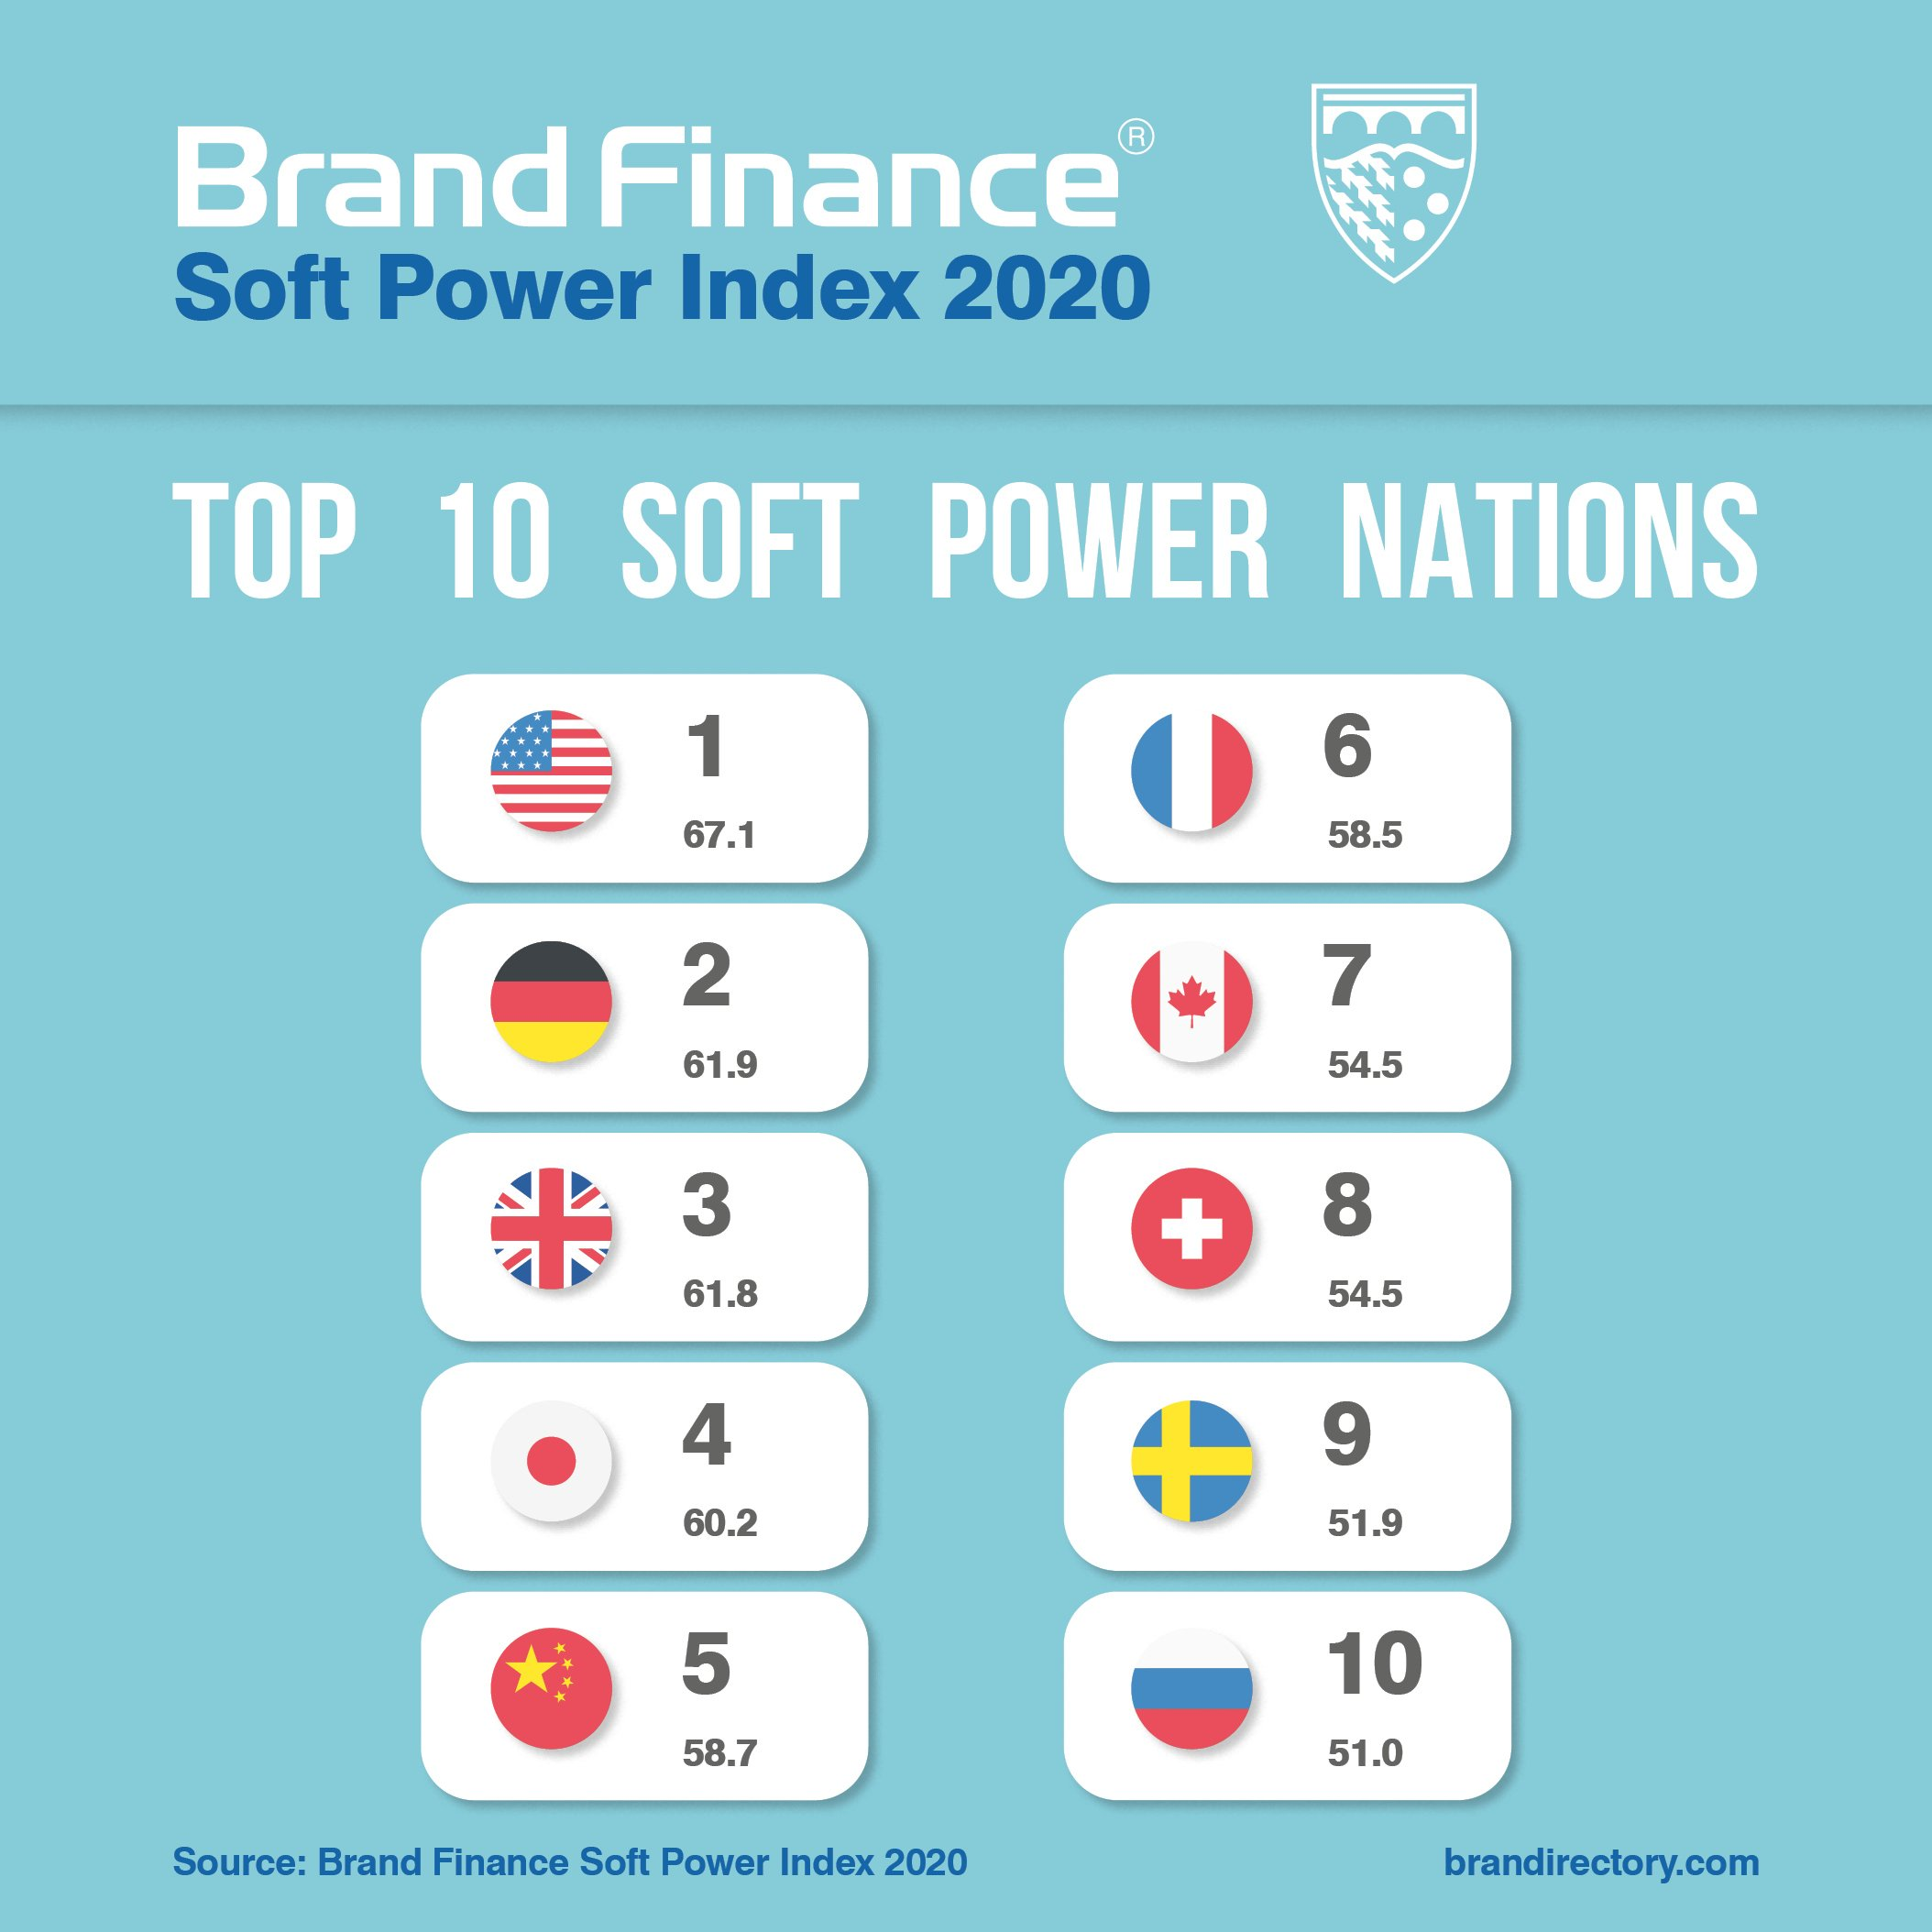 Top 10 Soft Power Nations from the Brand Finance Soft Power Index